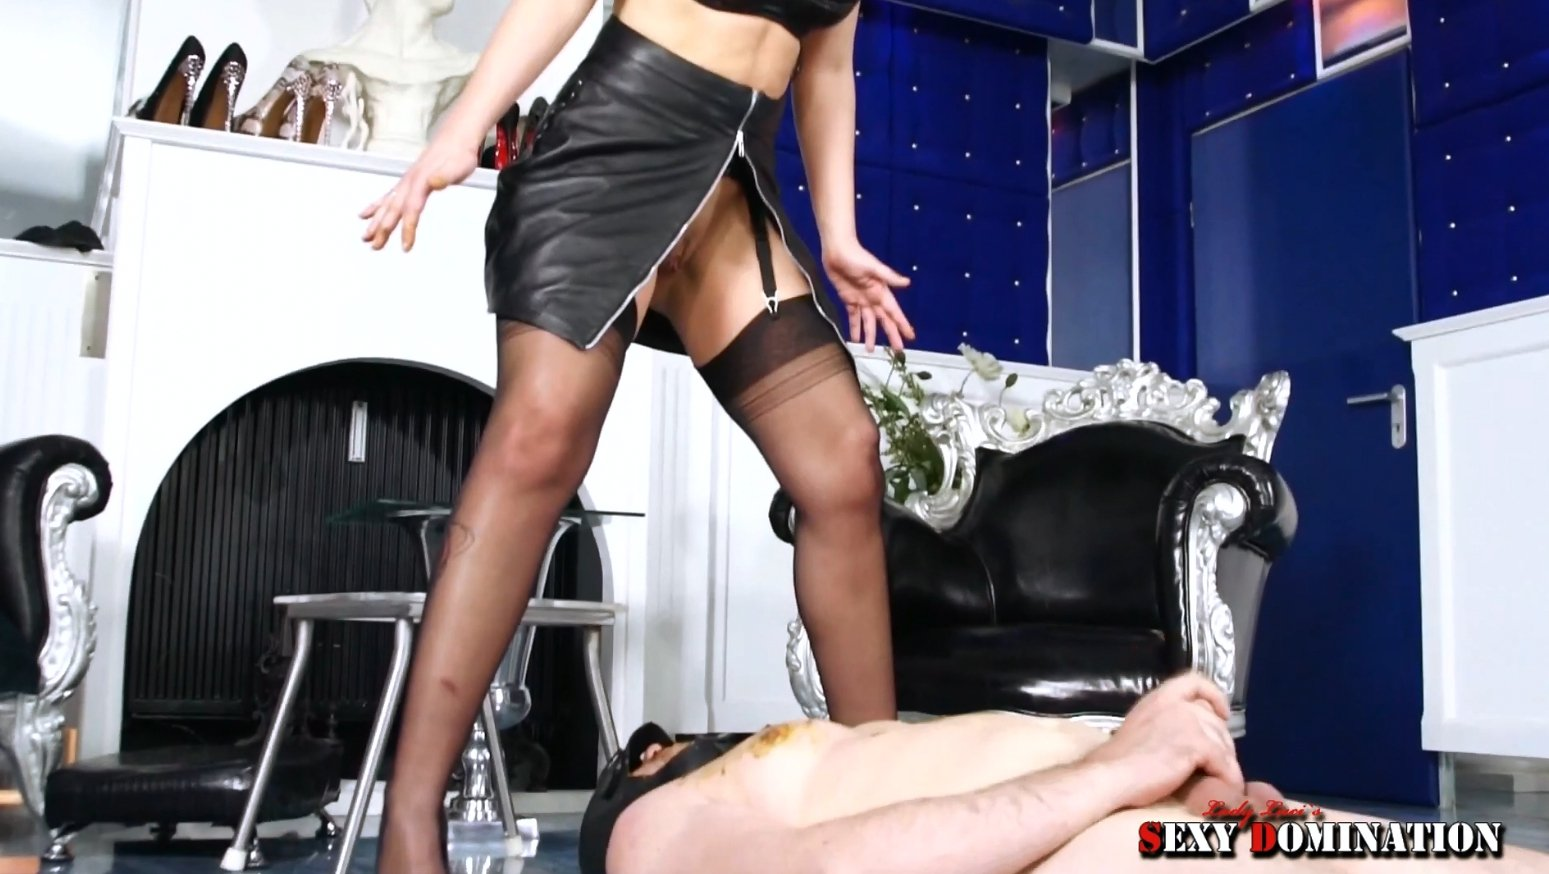 Dirty dreams (Premium user request by Bert) with Lady Luci 19,99 €